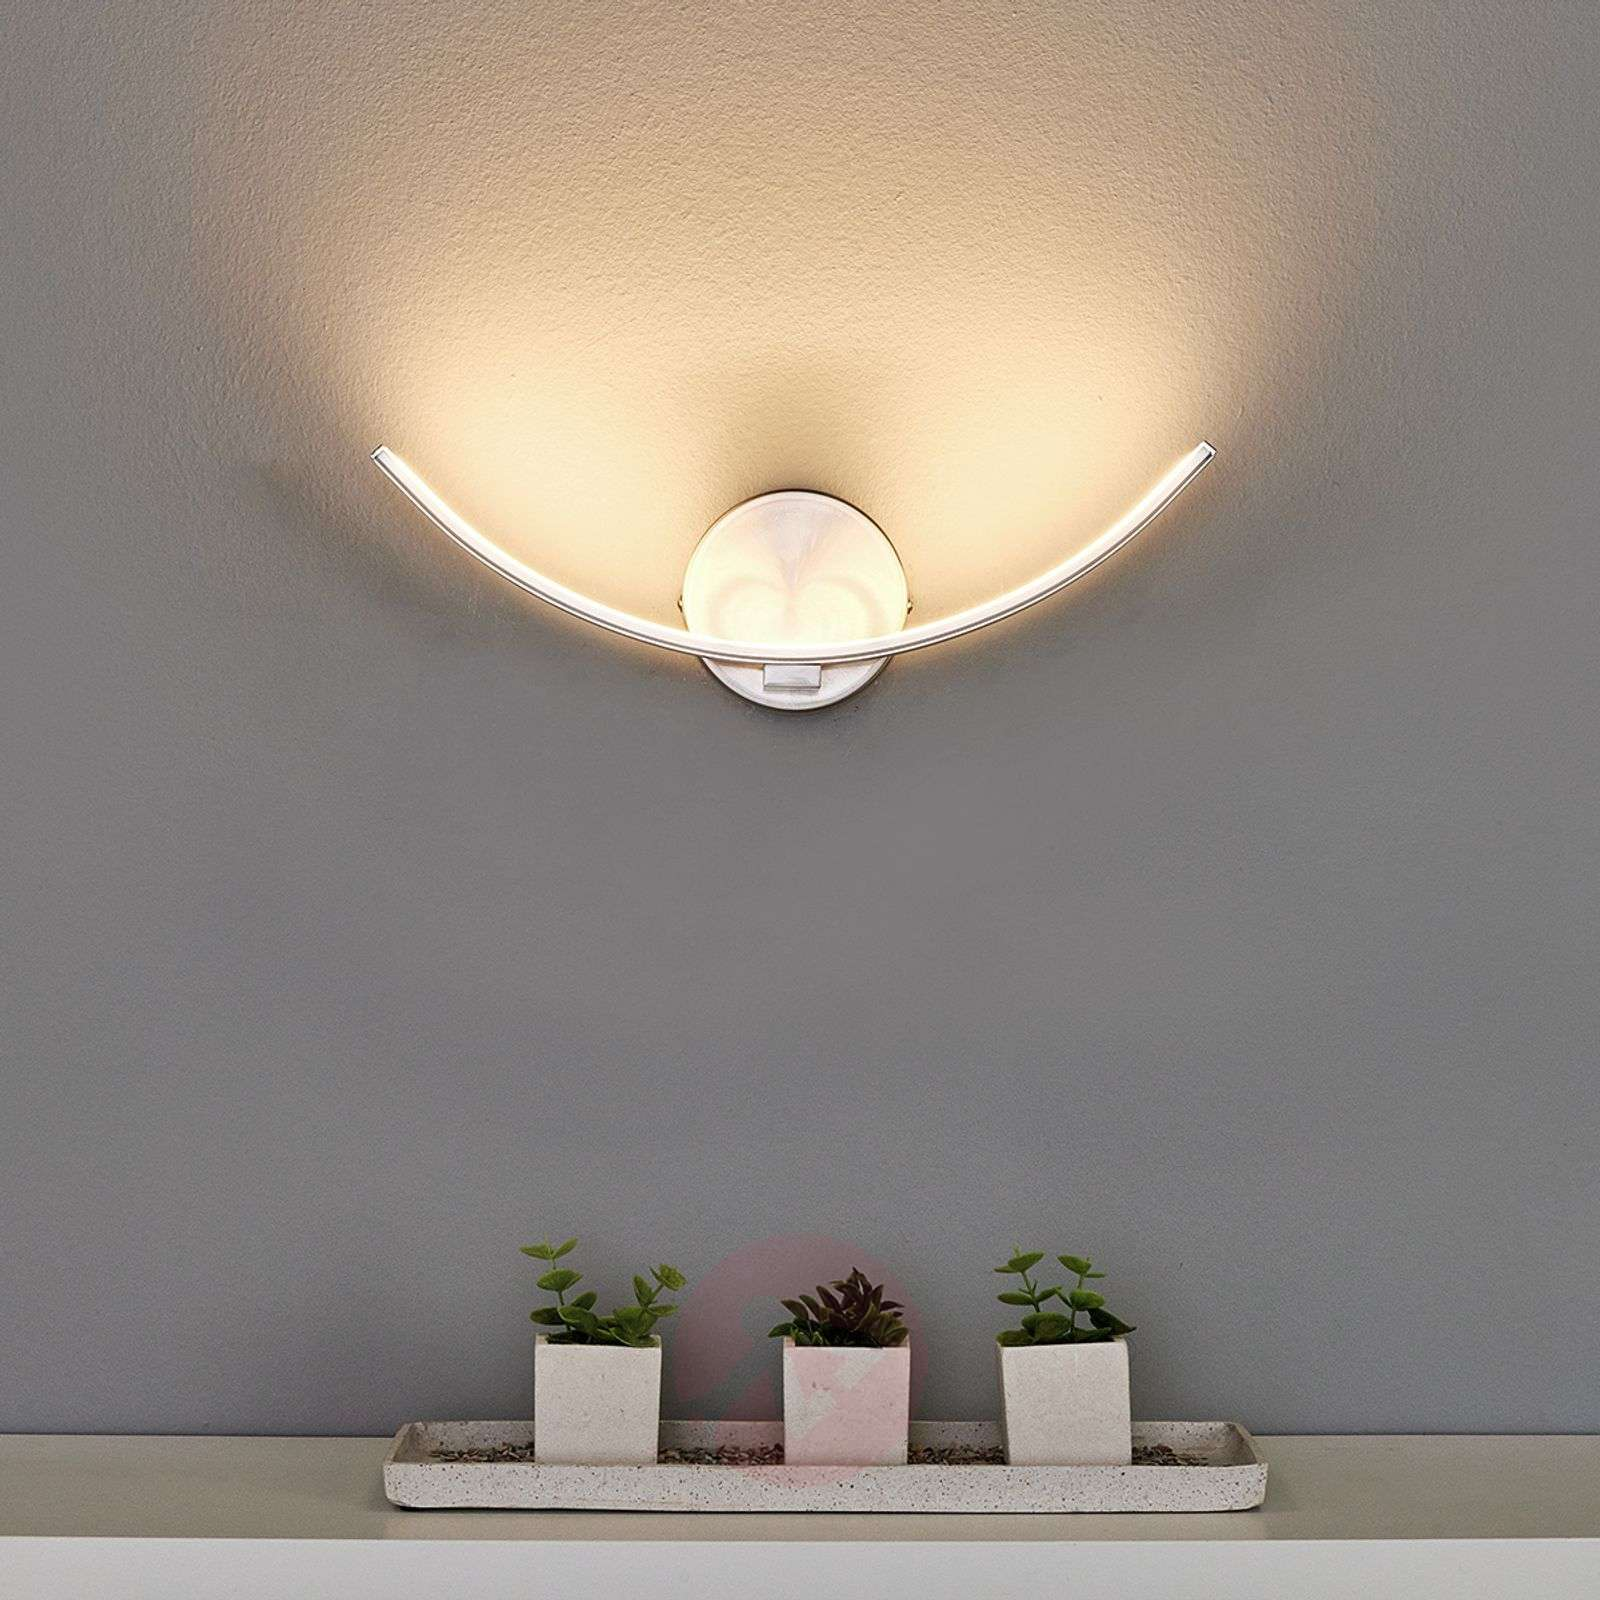 Led Wall Lights Indoor Uk: Curved LED Wall Lamp Iven